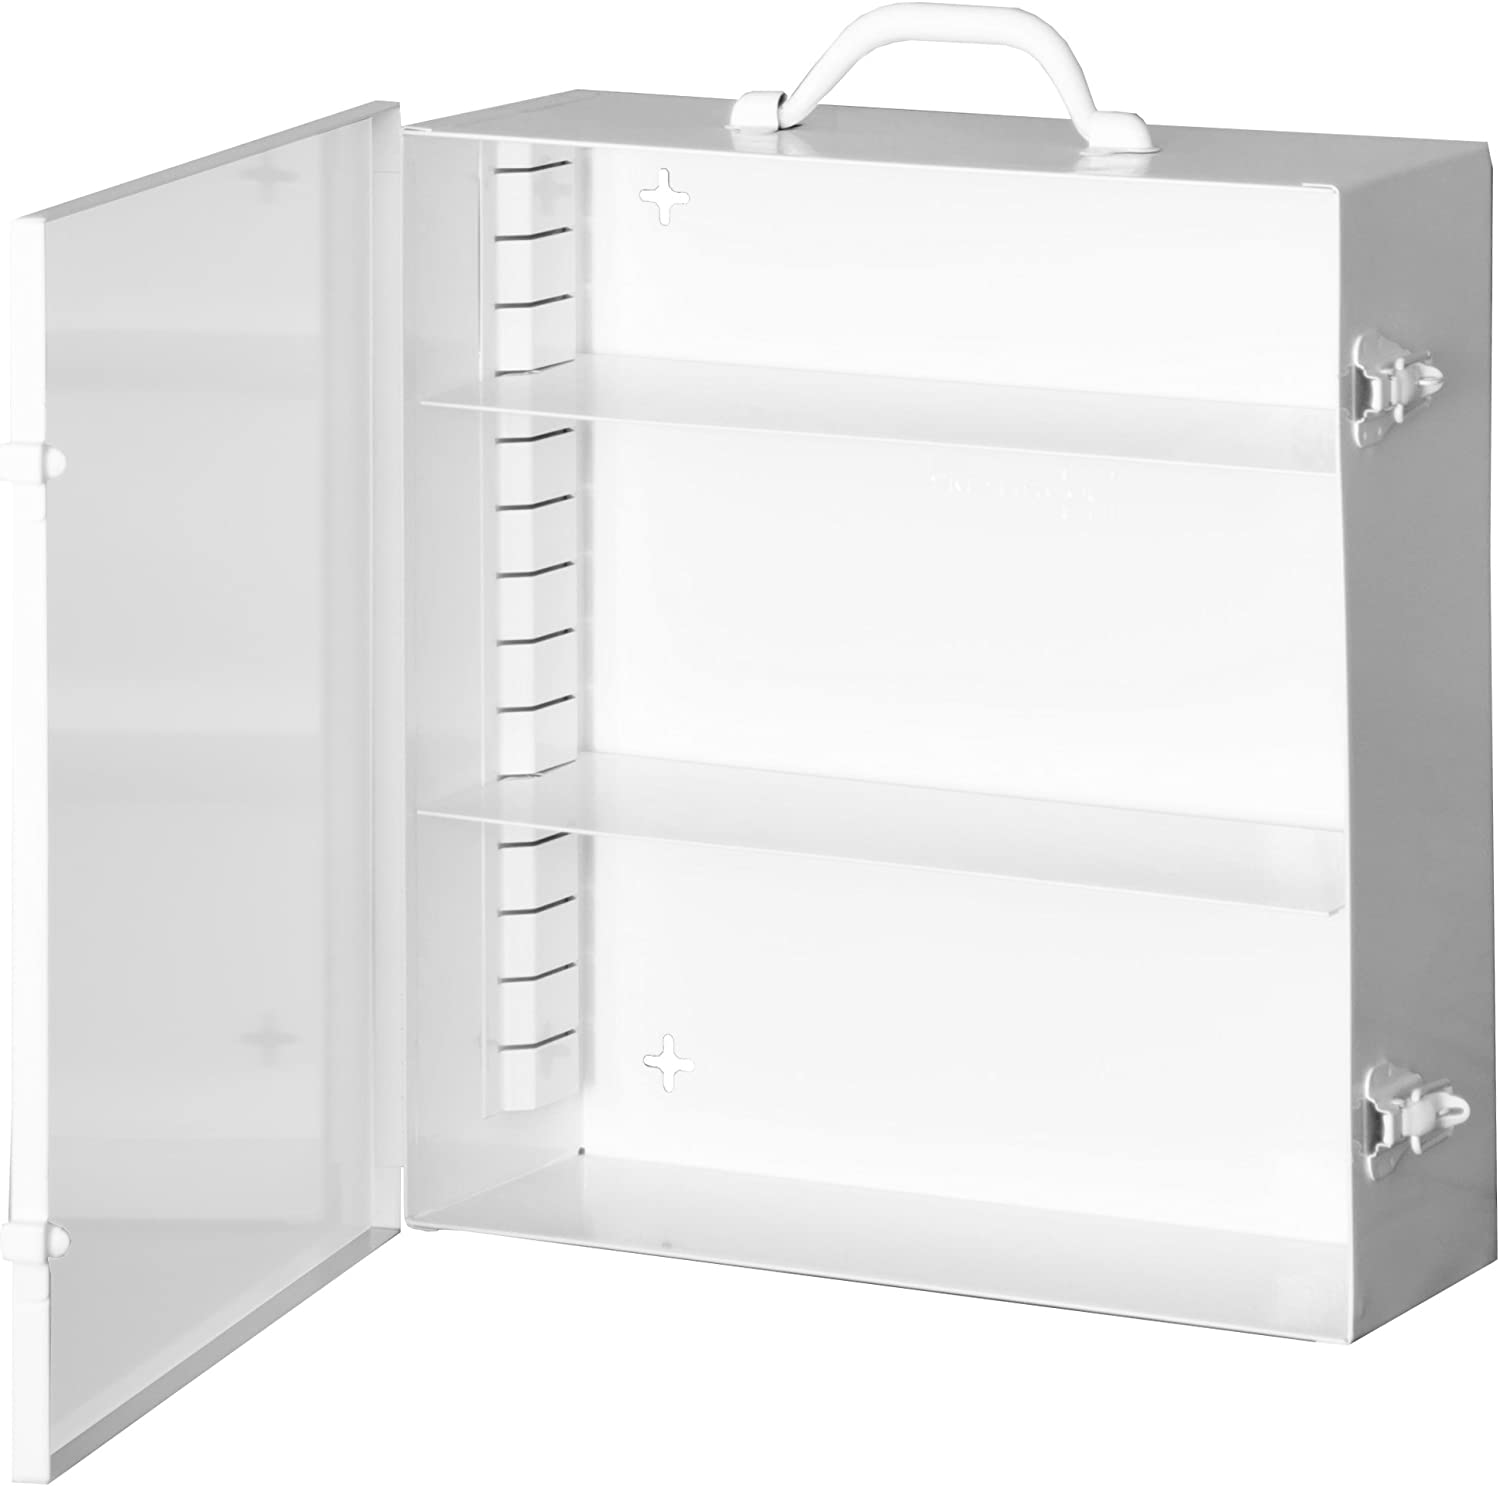 Durham 534AV-43 Cold Rolled Steel 9AV Industrial First Aid Cabinet, 5-9 16  L x 15  W x 16-5 32  H, 2 Adjustable Shelves, White Powder Coated Finish